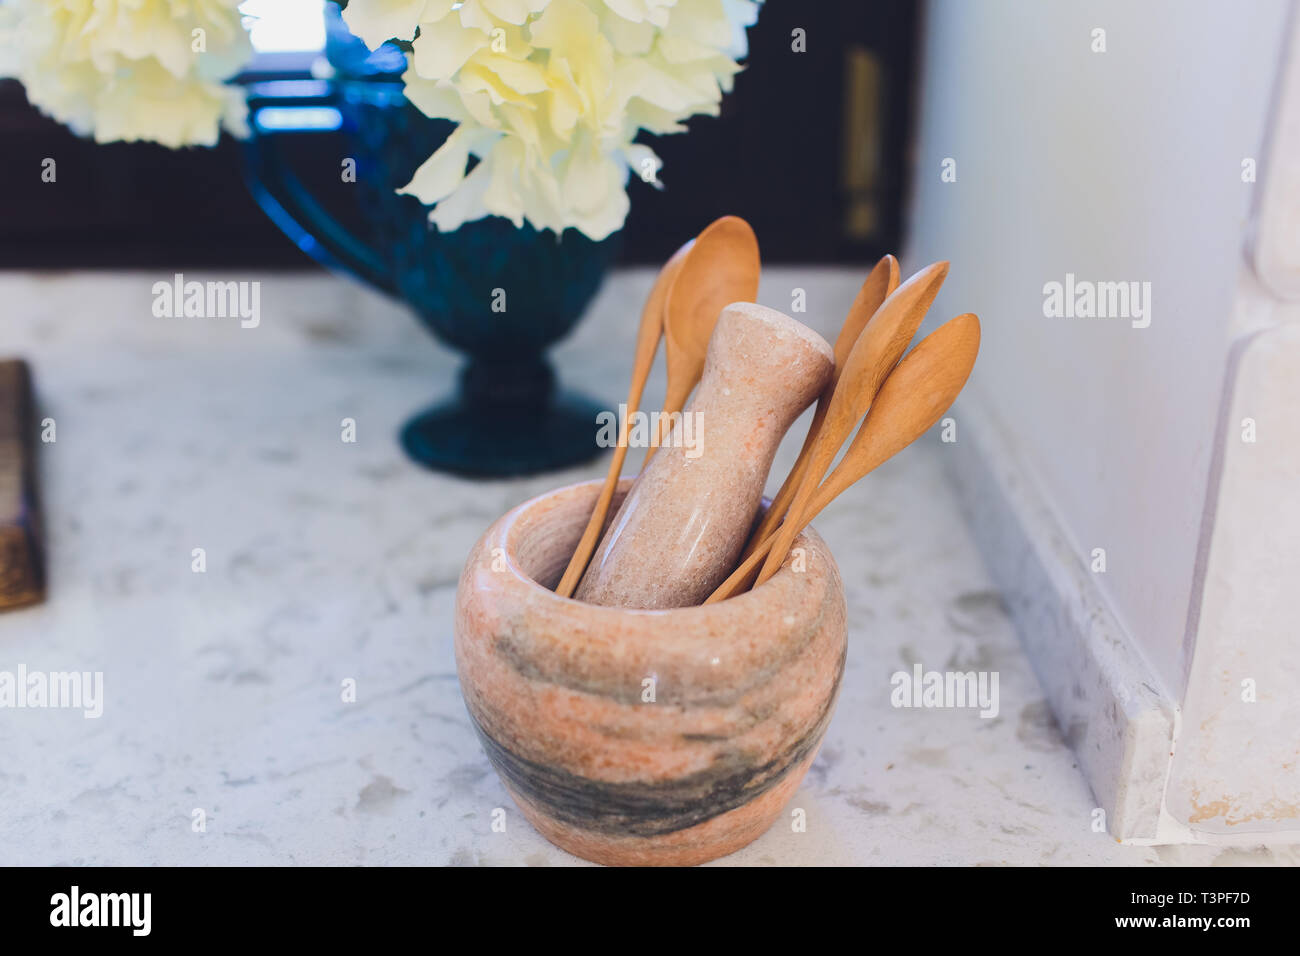 Wooden rustic and vintage crockery, tableware, utensils and stuff on wooden table-top. Kitchen still life as background for design. Image with copy Stock Photo